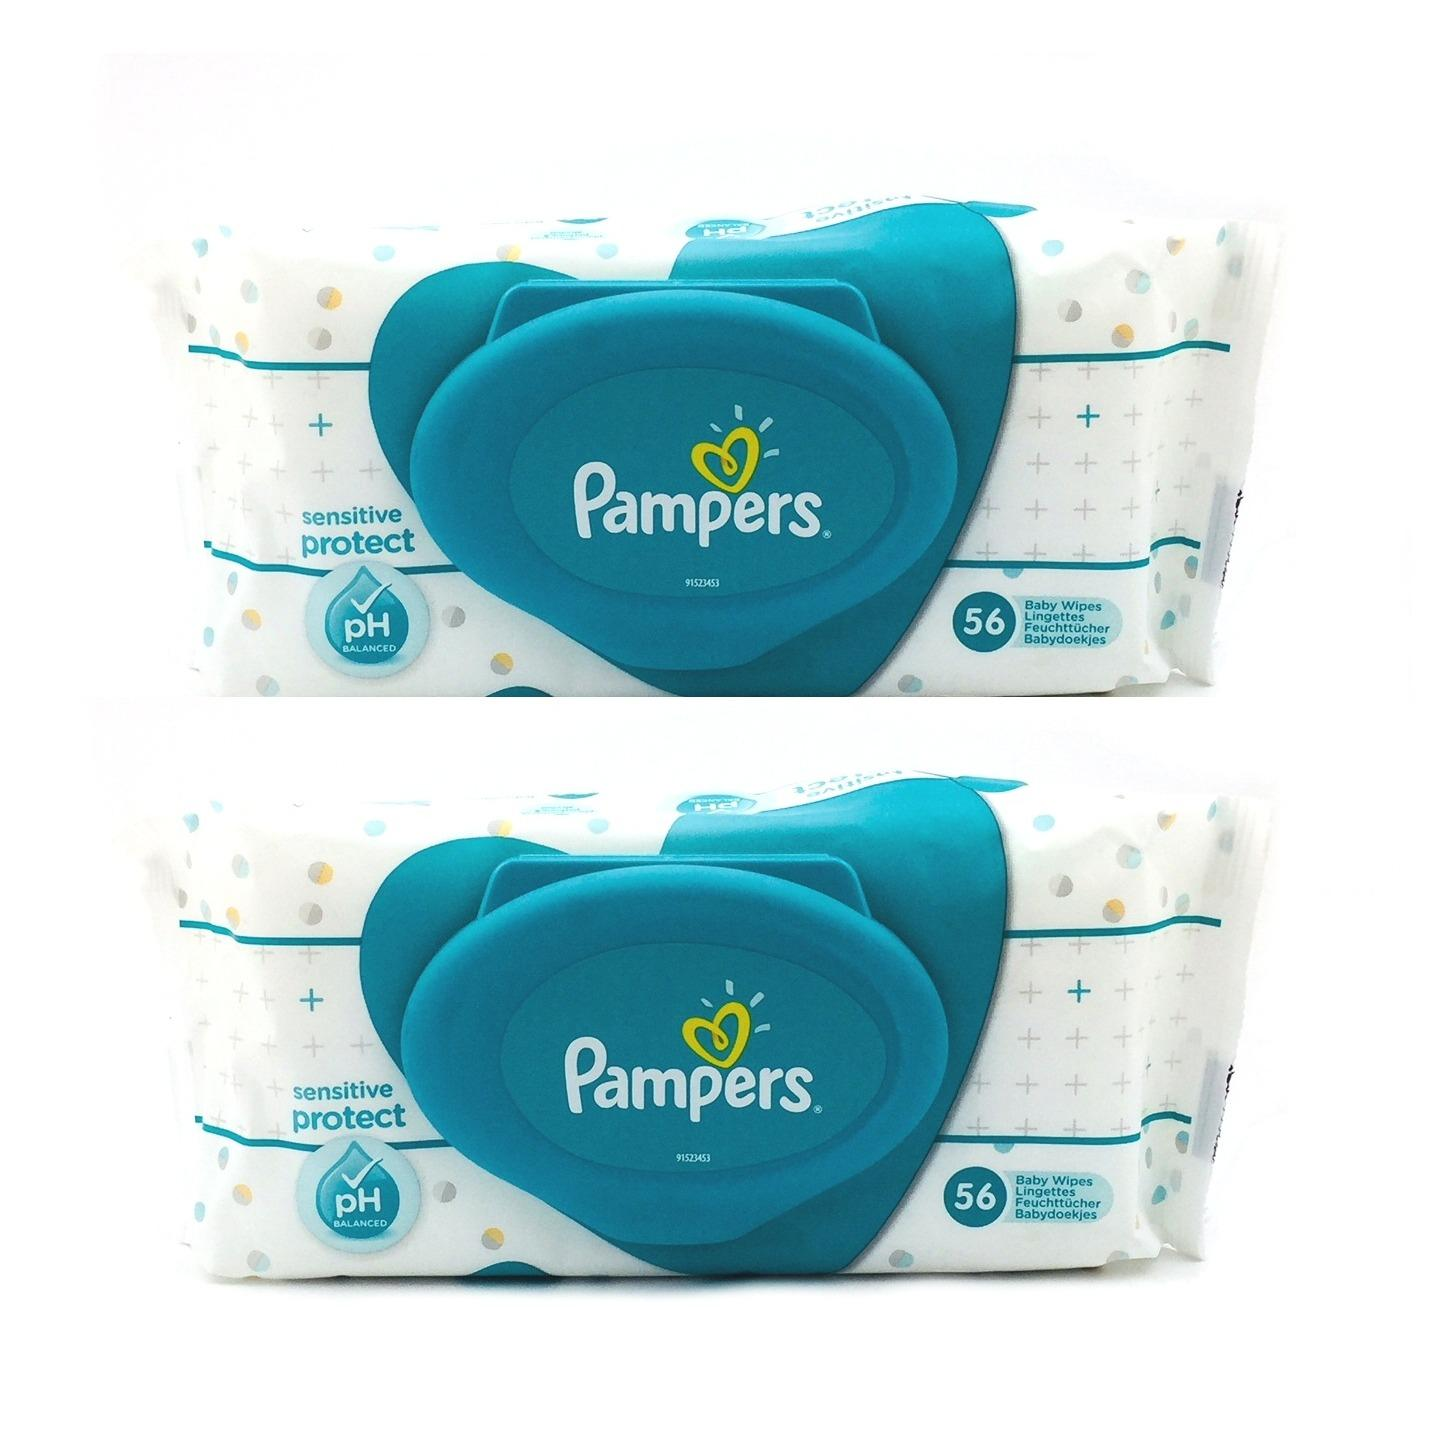 Pampers Philippines Price List Diaper For Babies Premium Care Tape Nb 52 Disposable Diapers Wipes Refills